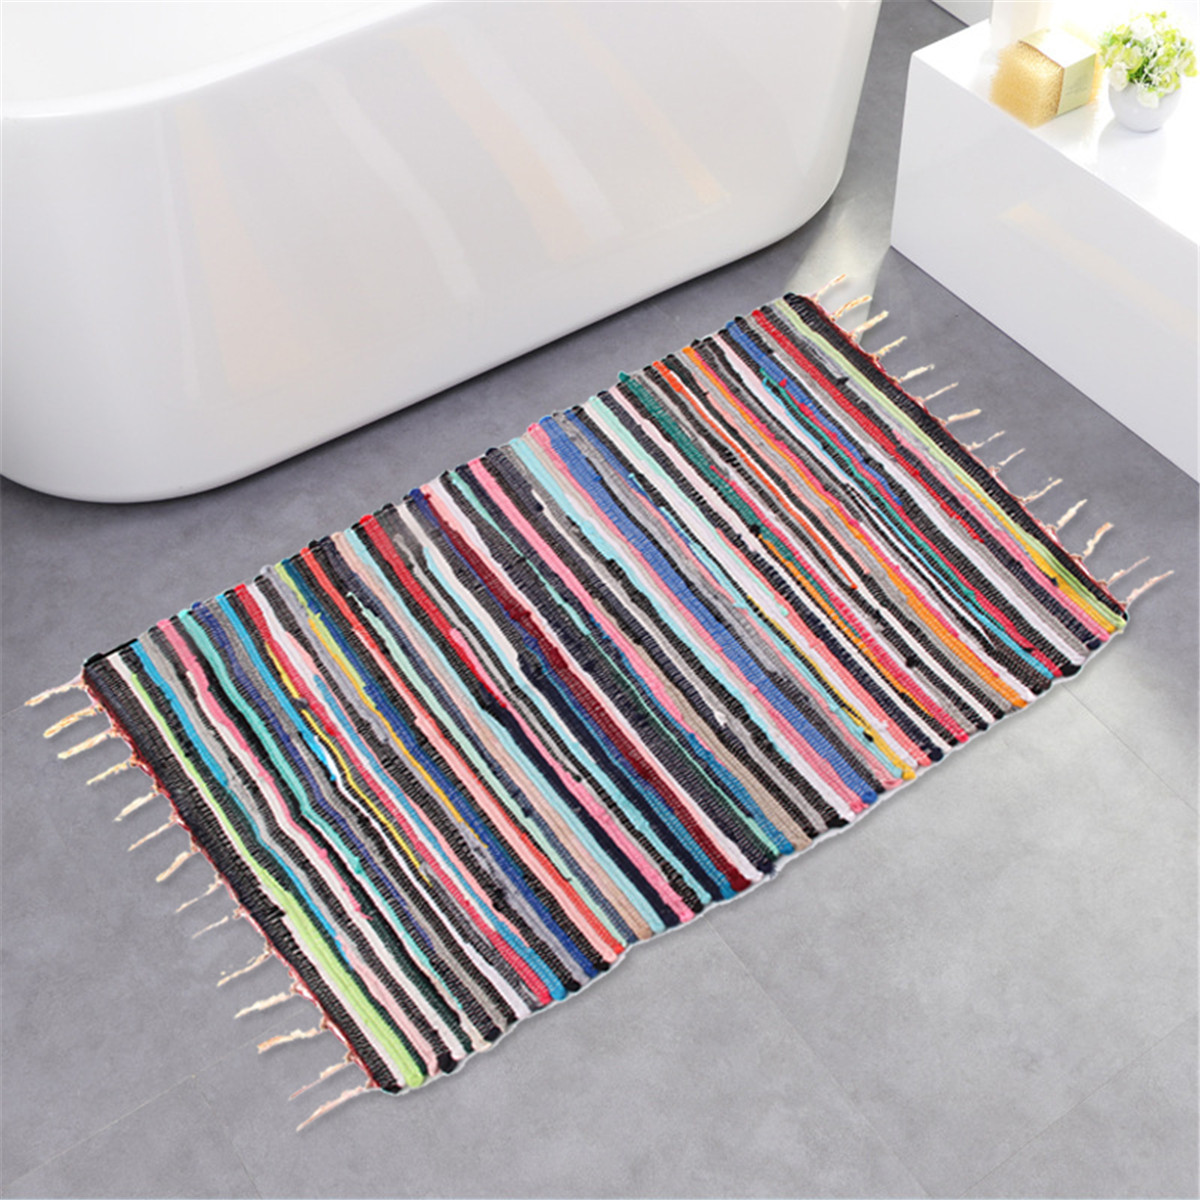 Large Size Handmade Mat Cotton Multicolor Braided Tassel Area Striped Floor Rugs Home Carosets